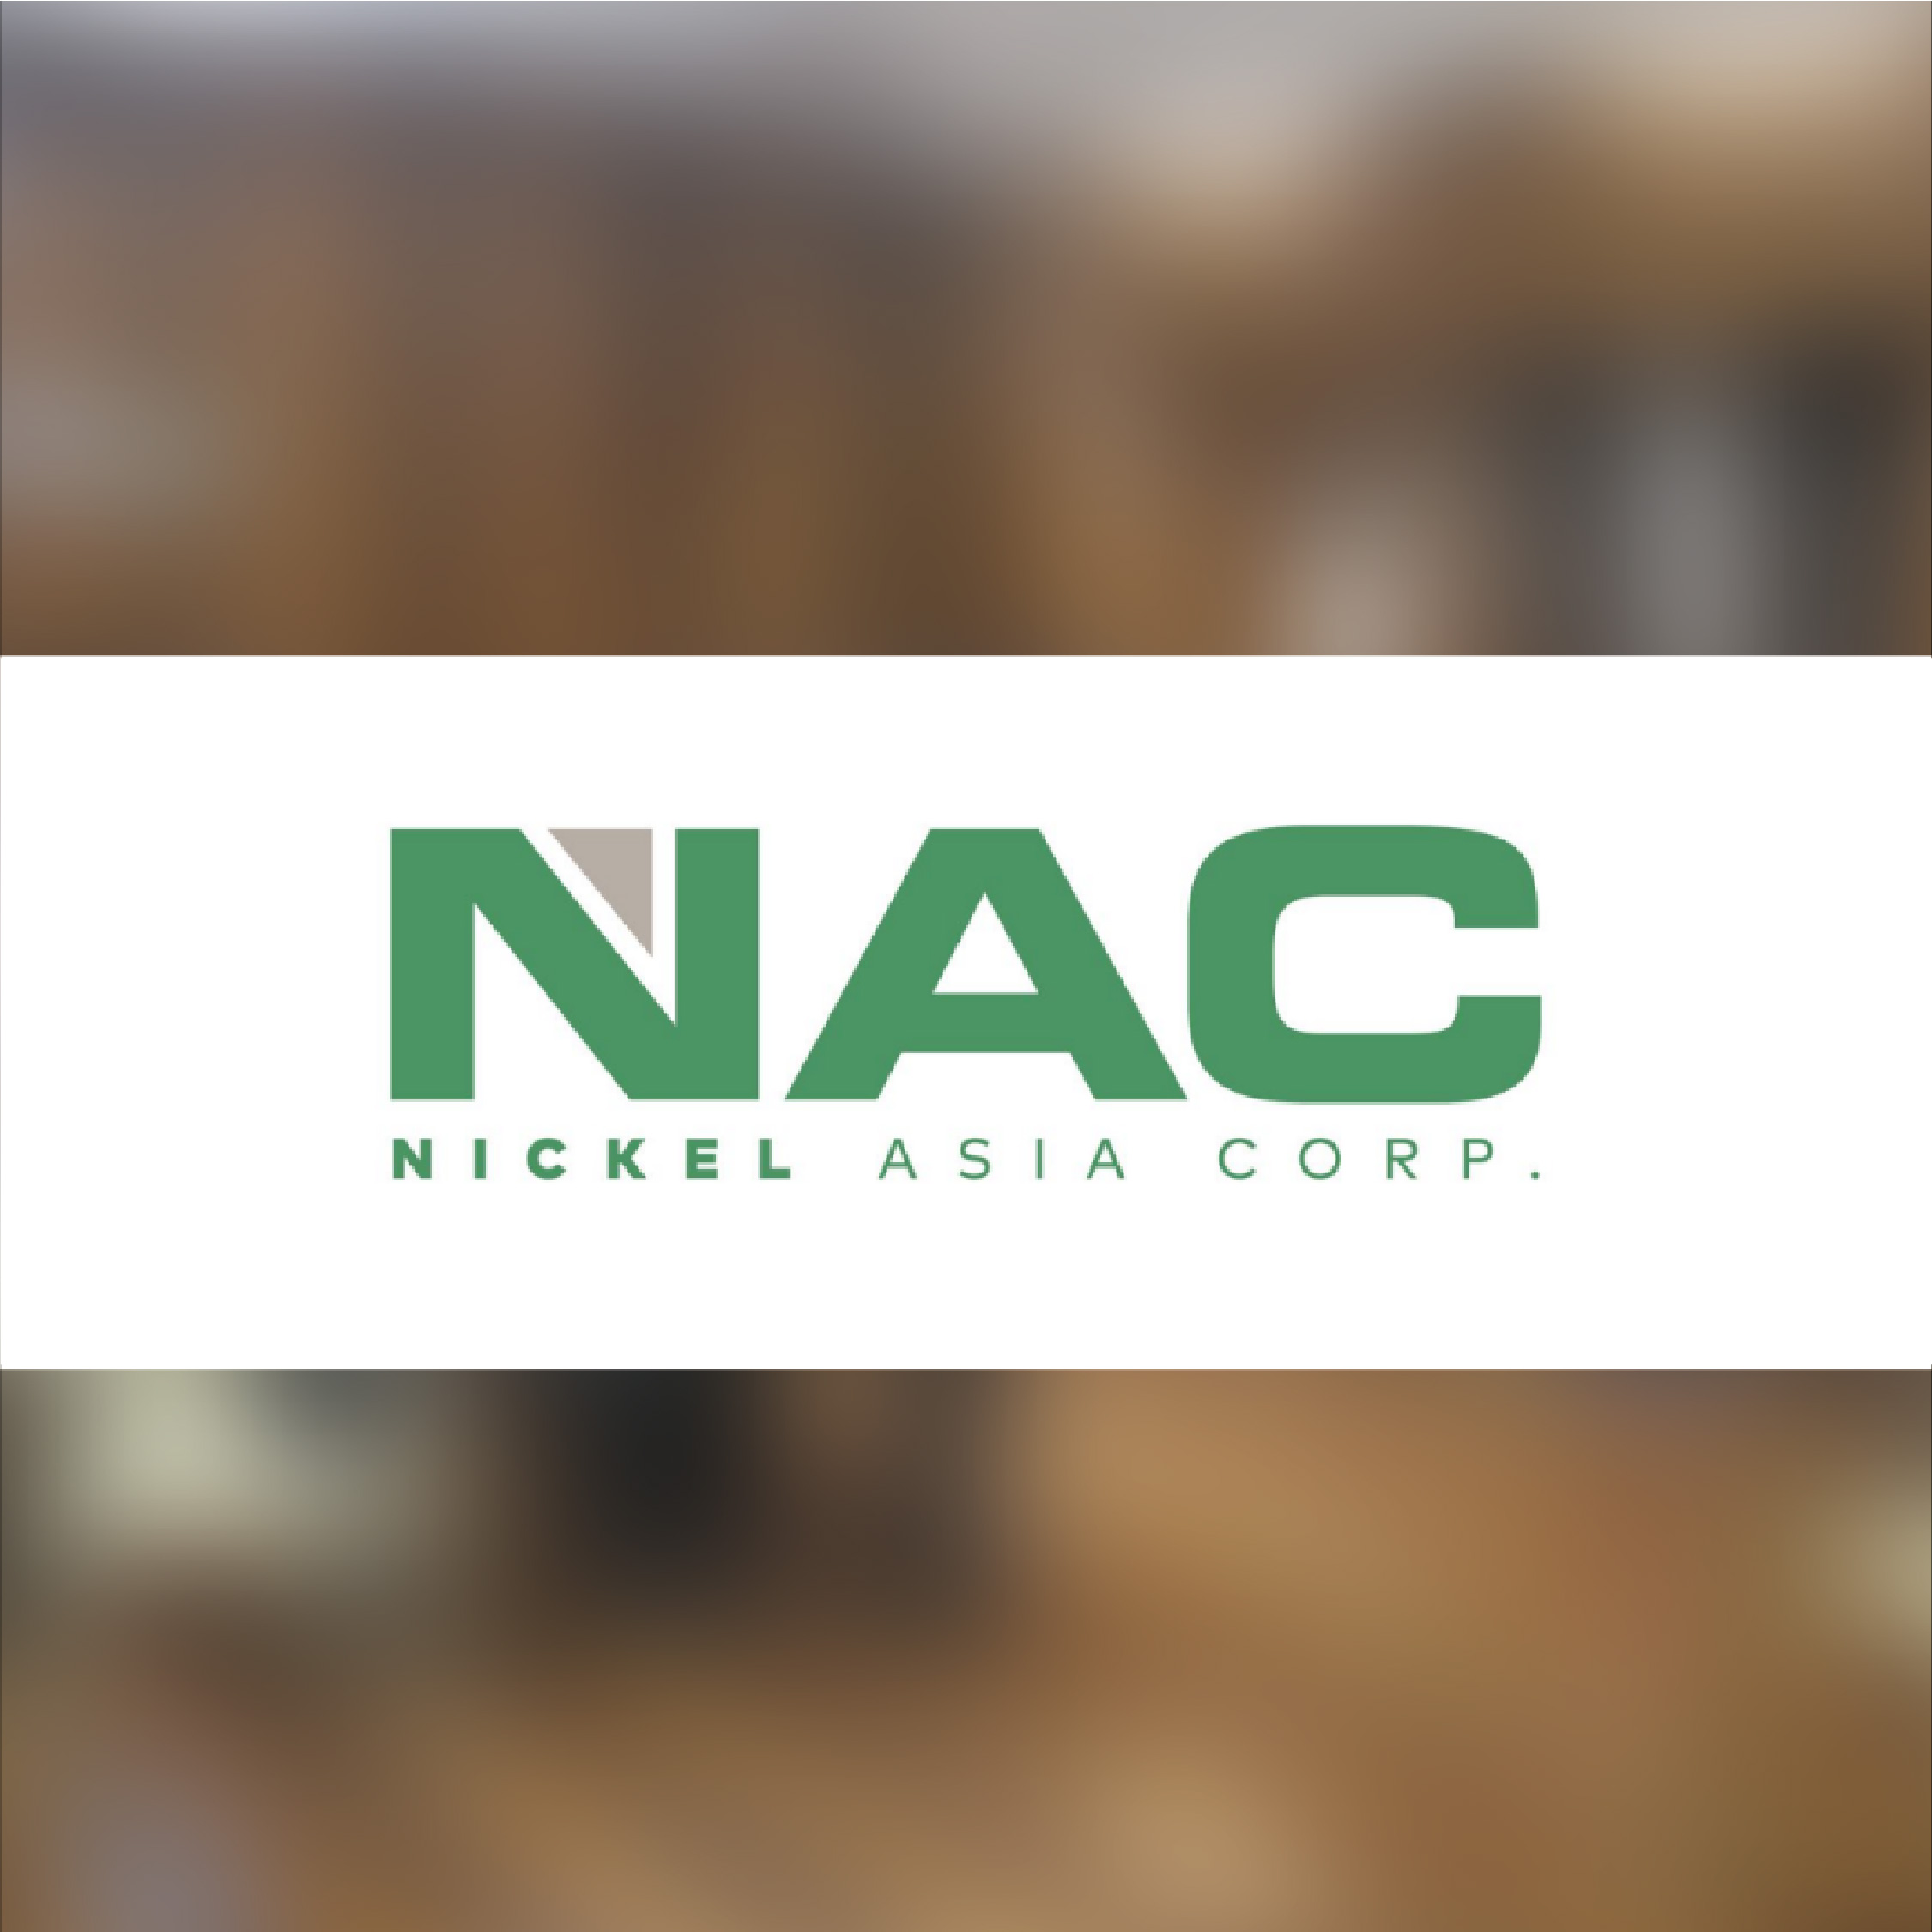 NICKEL ASIA CORPORATION